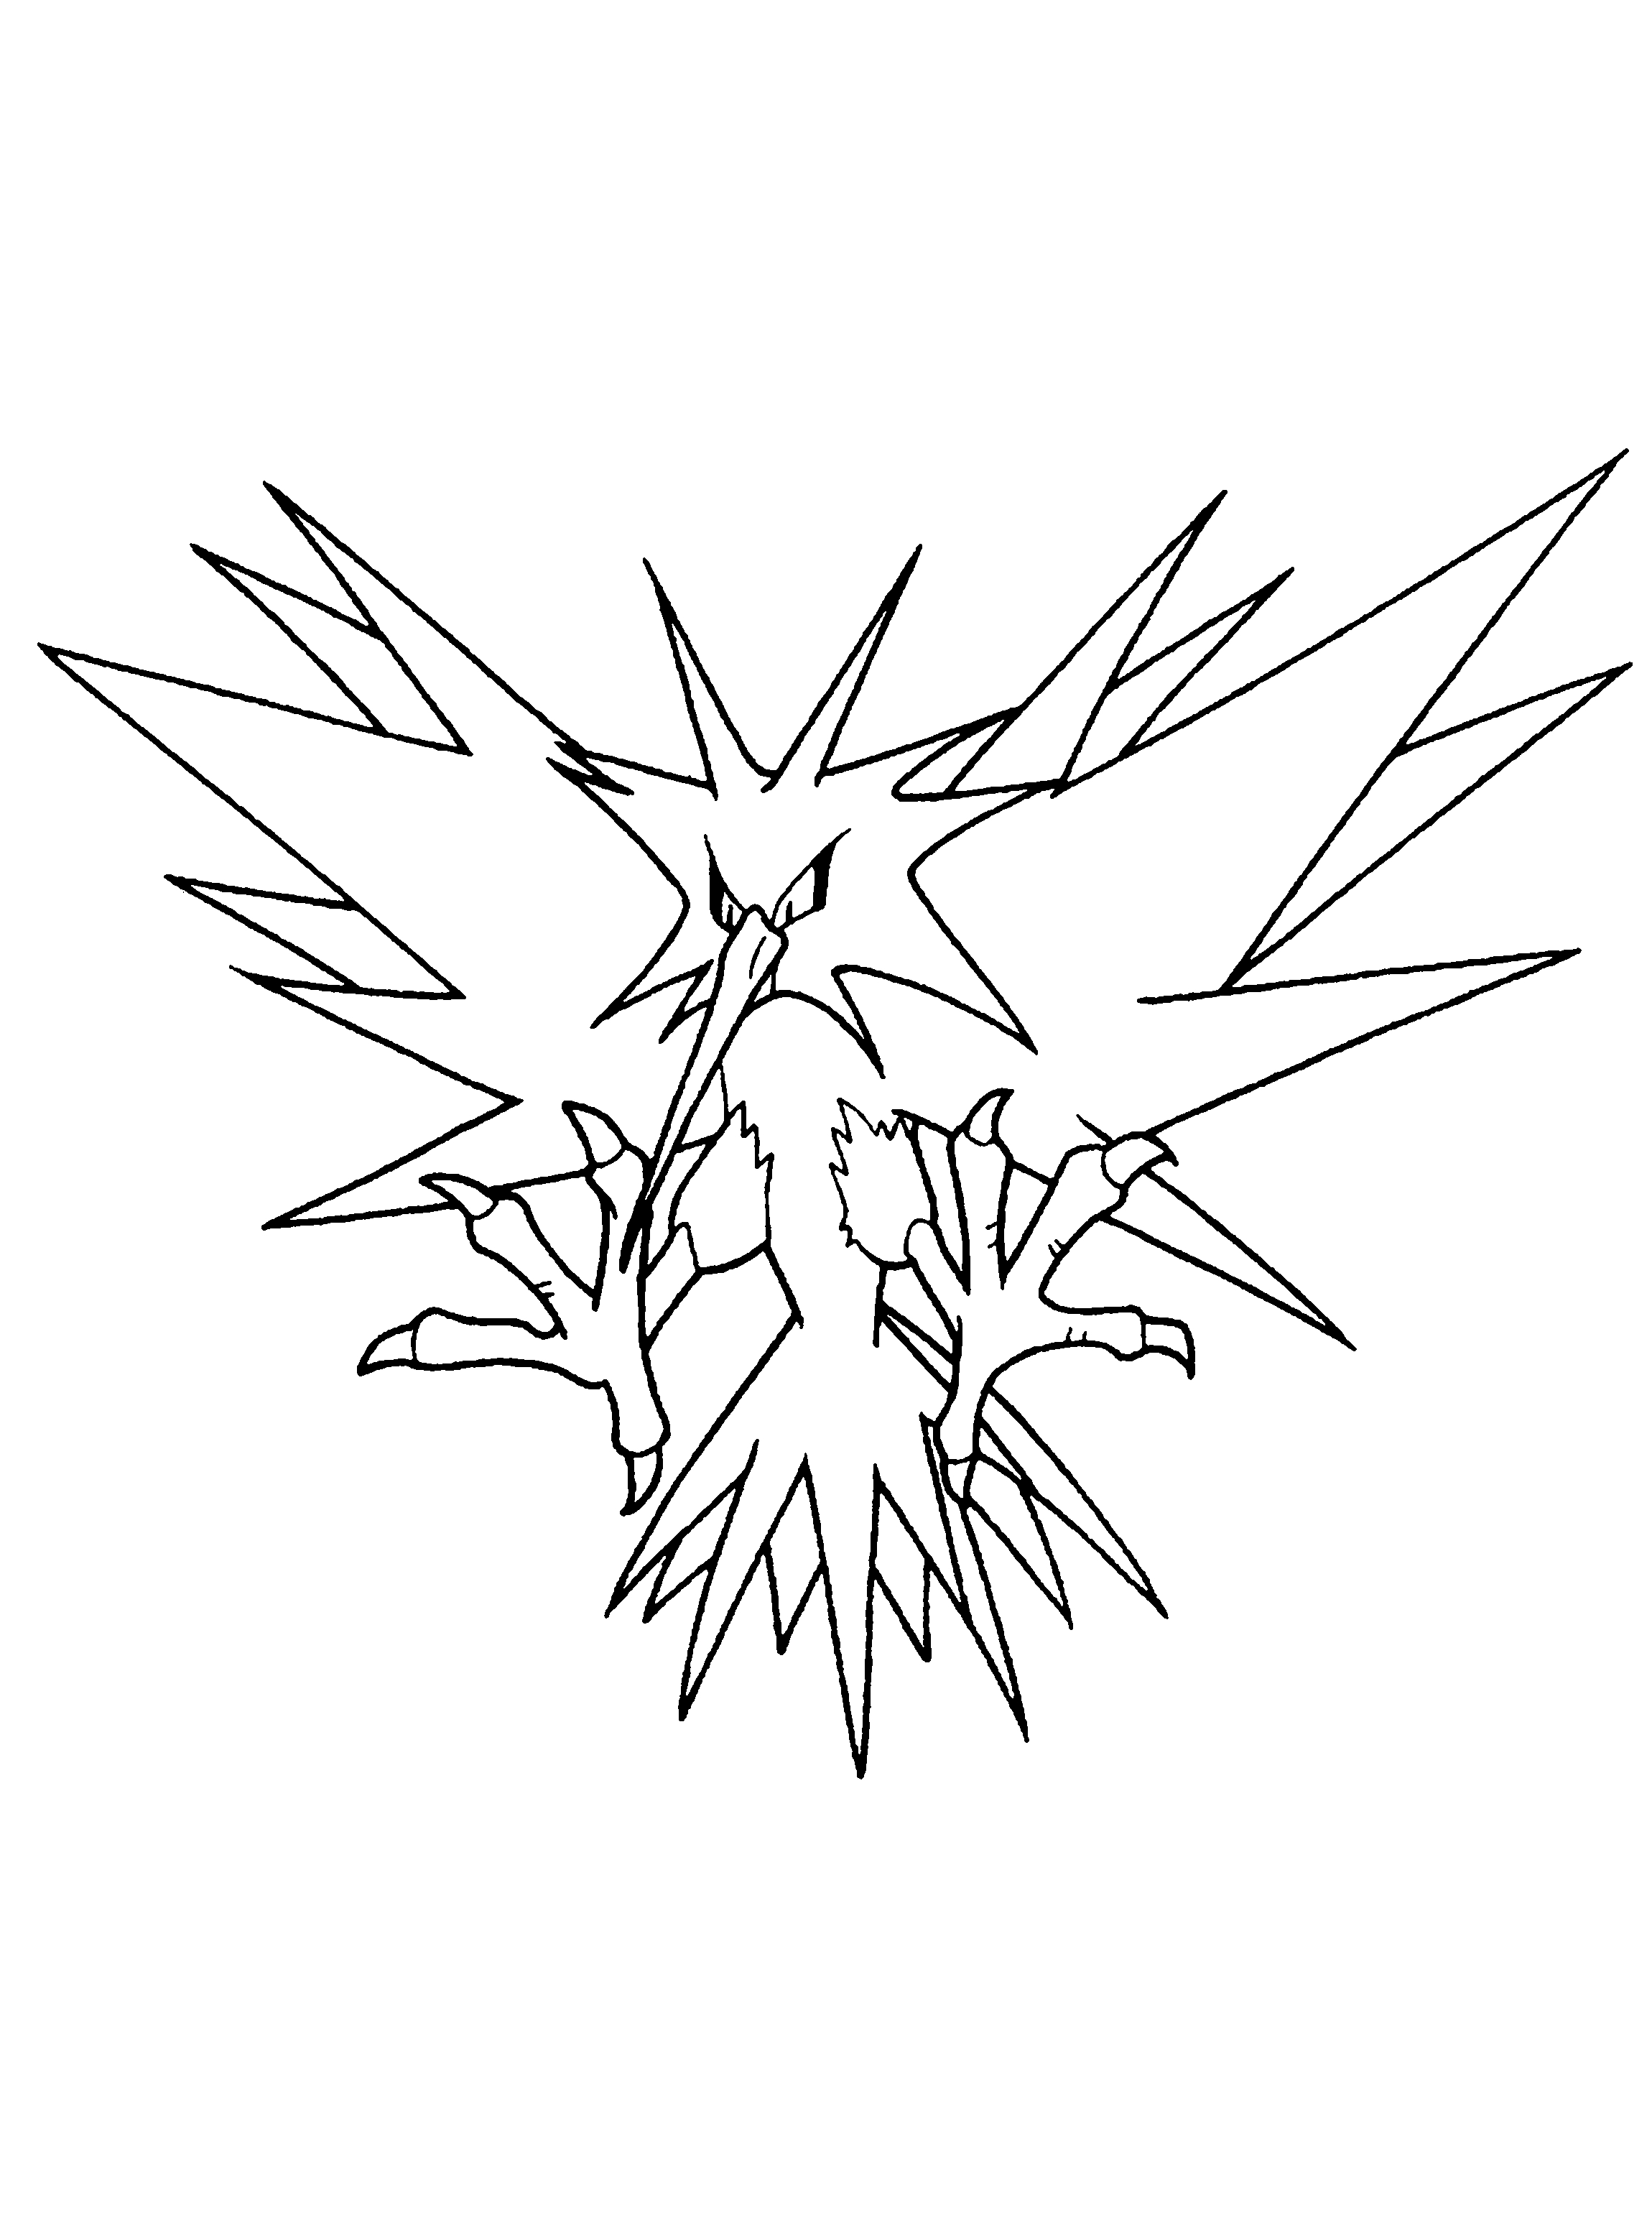 legendary pokemon coloring pages - coloring suite pages